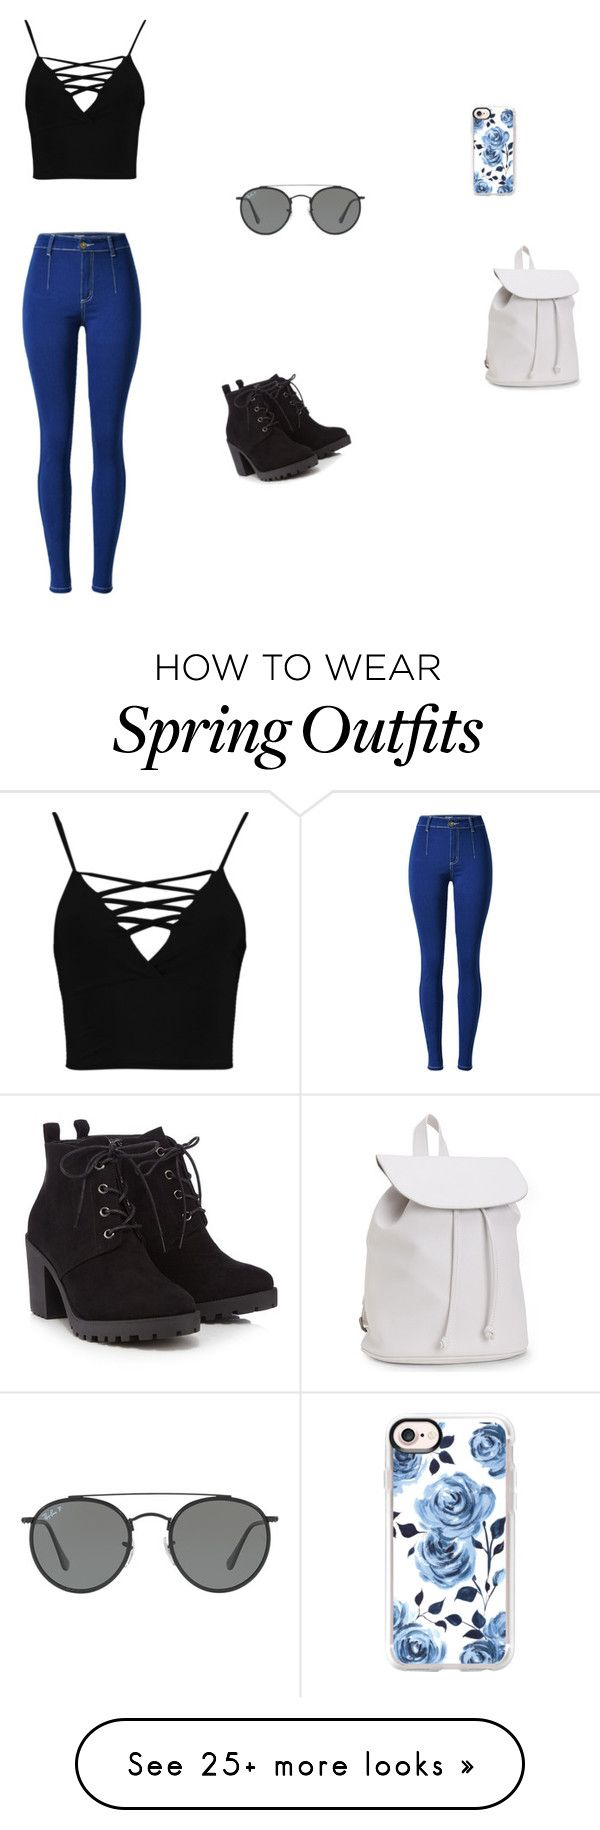 """""""A spring outfit and accessories"""" by blondeness21 on Polyvore featuring Boohoo, Red Herring, Aéropostale, Ray-Ban and Casetify"""